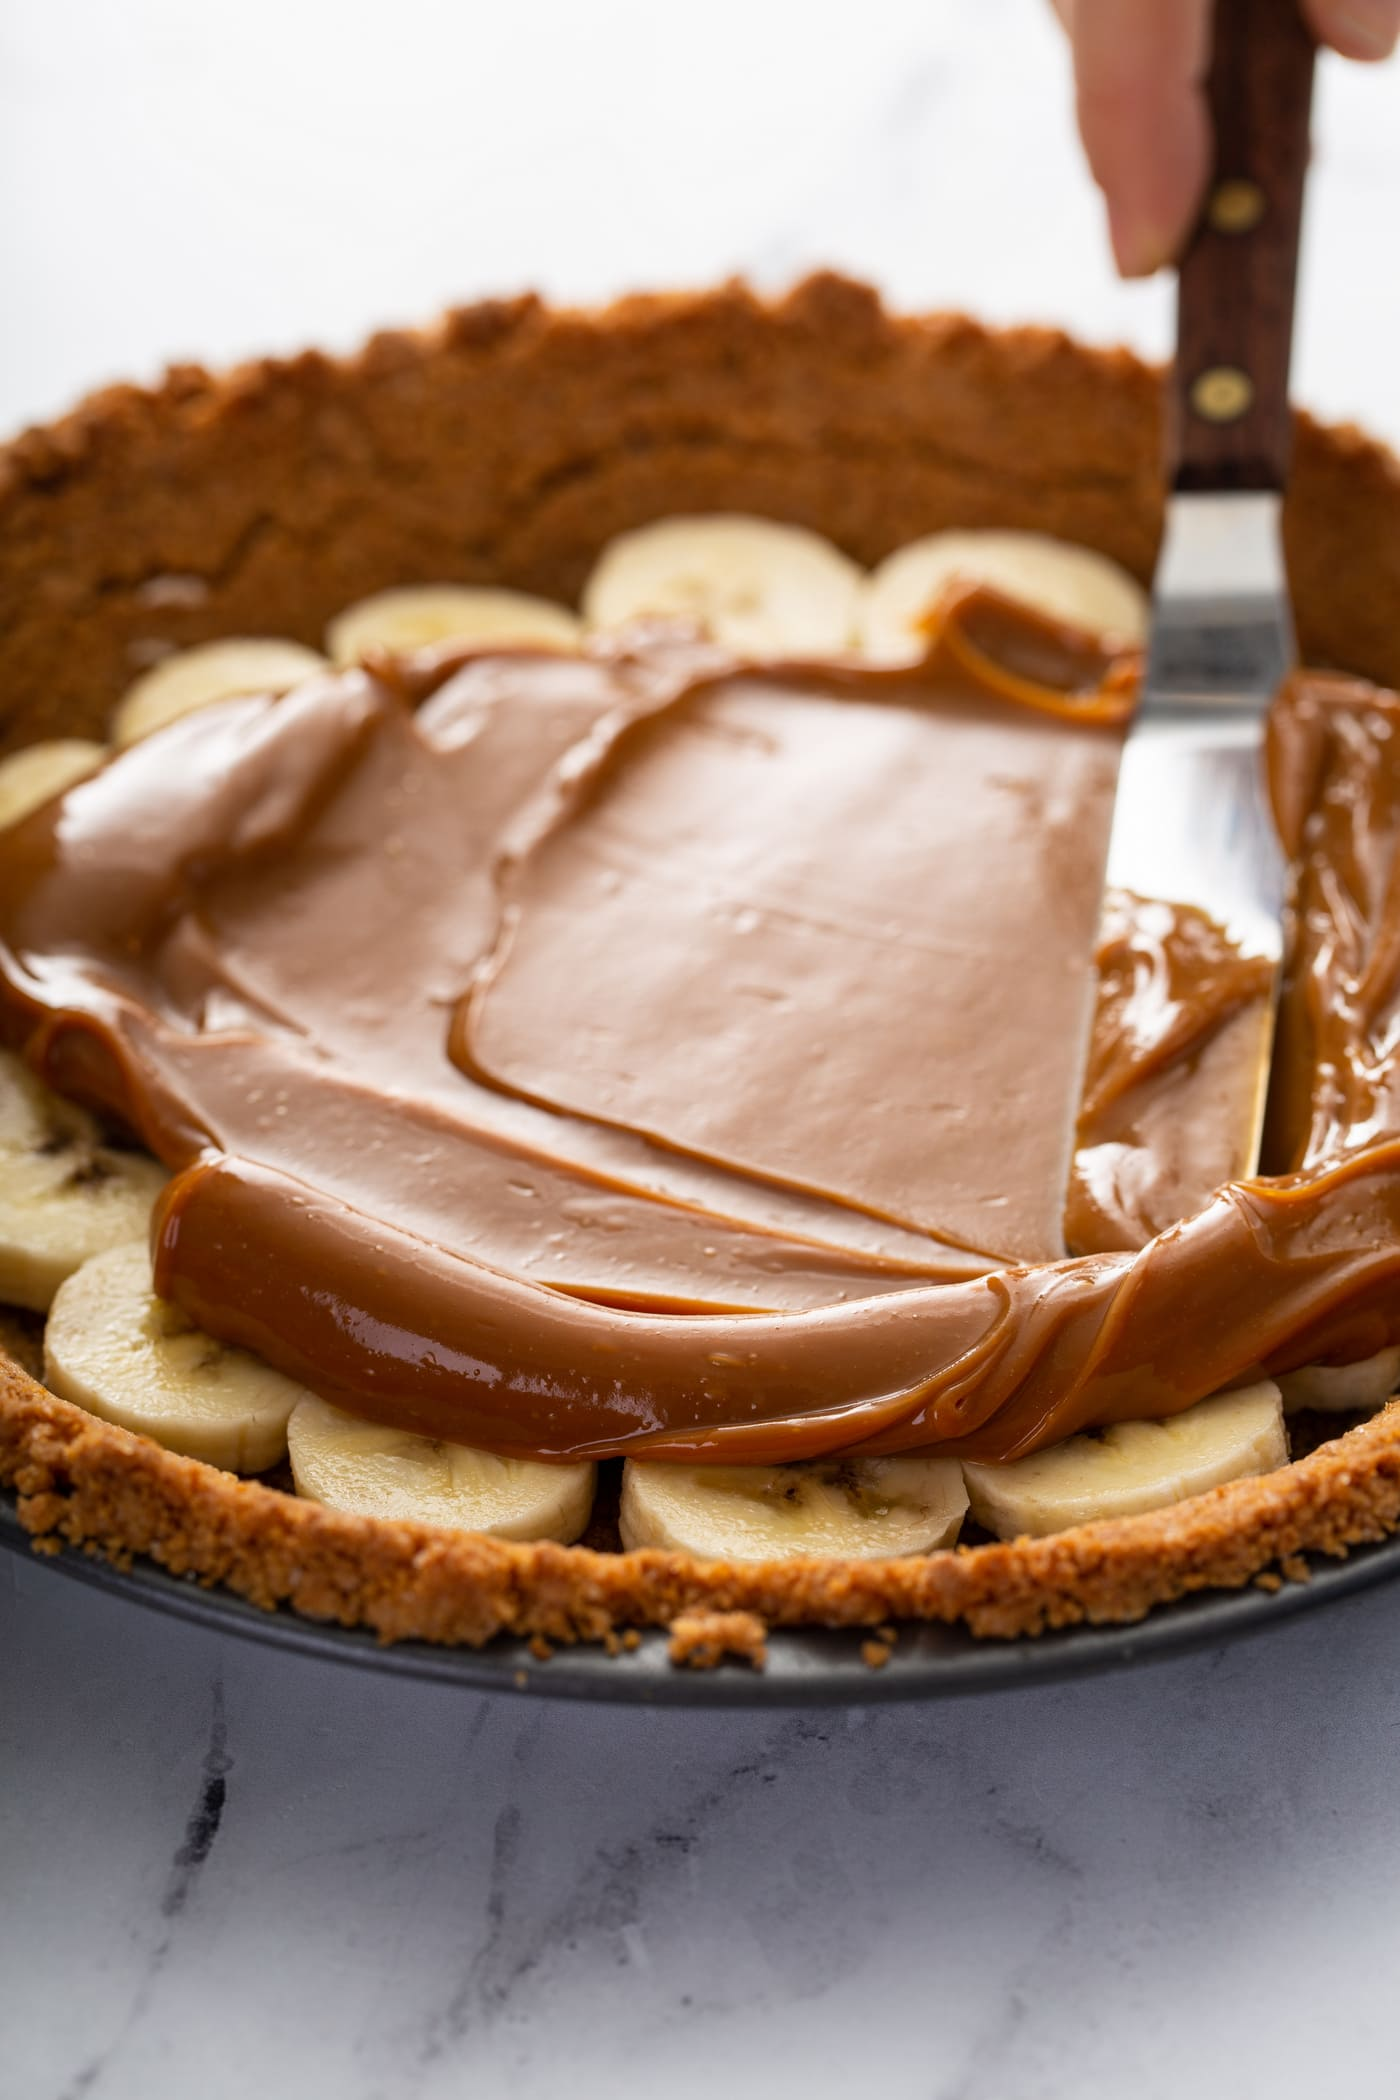 A graham cracker crust in a pie dish.  There are sliced bananas in the bottom of the crust and dulce de leche is being spread over the top of the bananas.